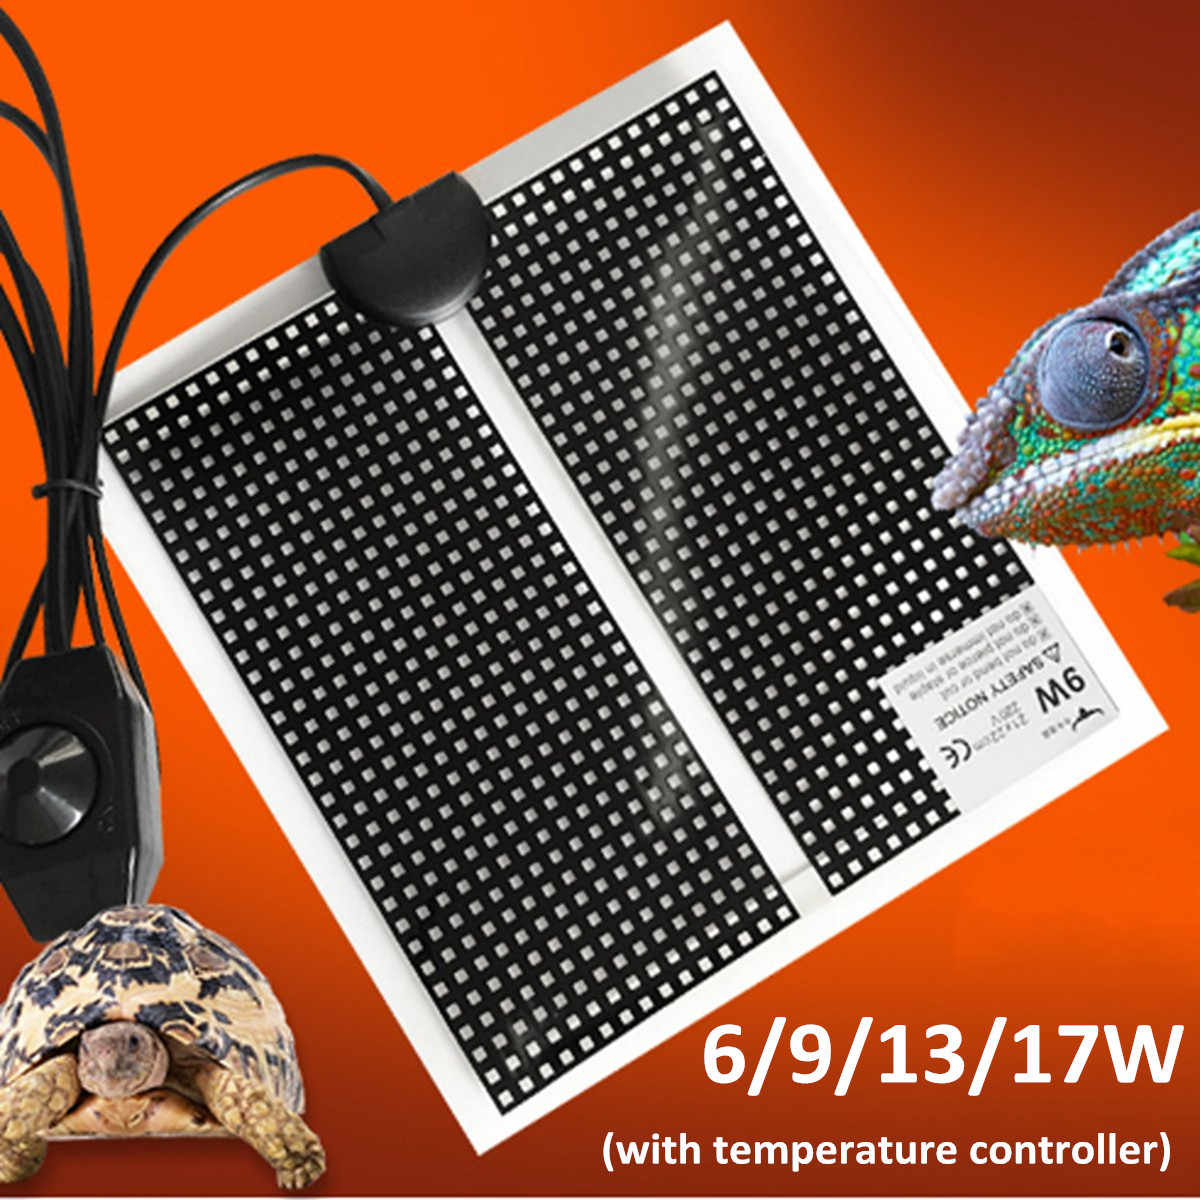 Adjustable Terrarium Reptiles Heat Mat 6-17W Climbing Pet Heating Warm Pad Temperature Controller Incubator Mat Accessories